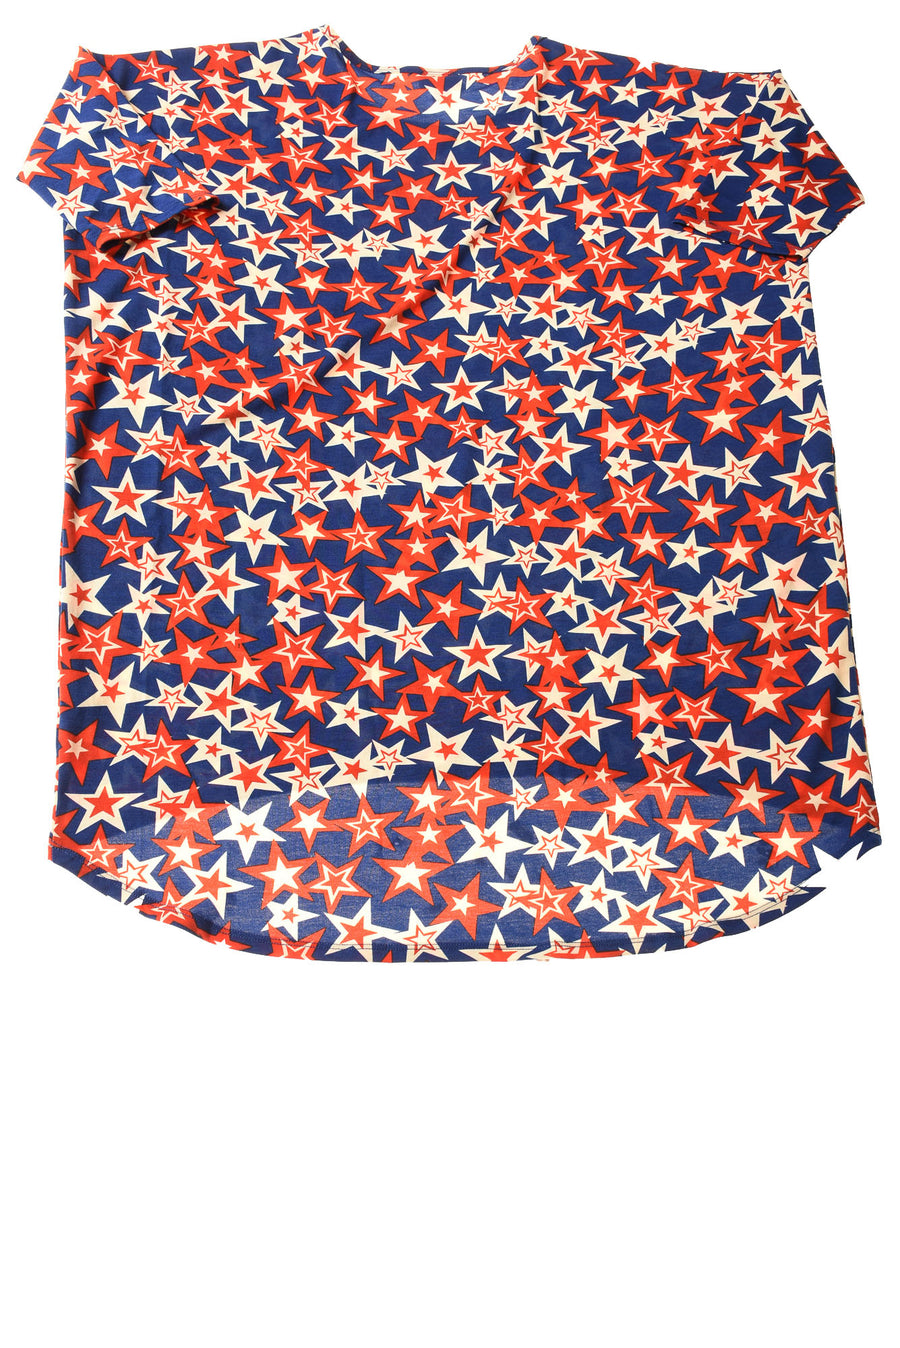 NEW Lula Roe Women's Top Medium Multi-Color / Star Printed